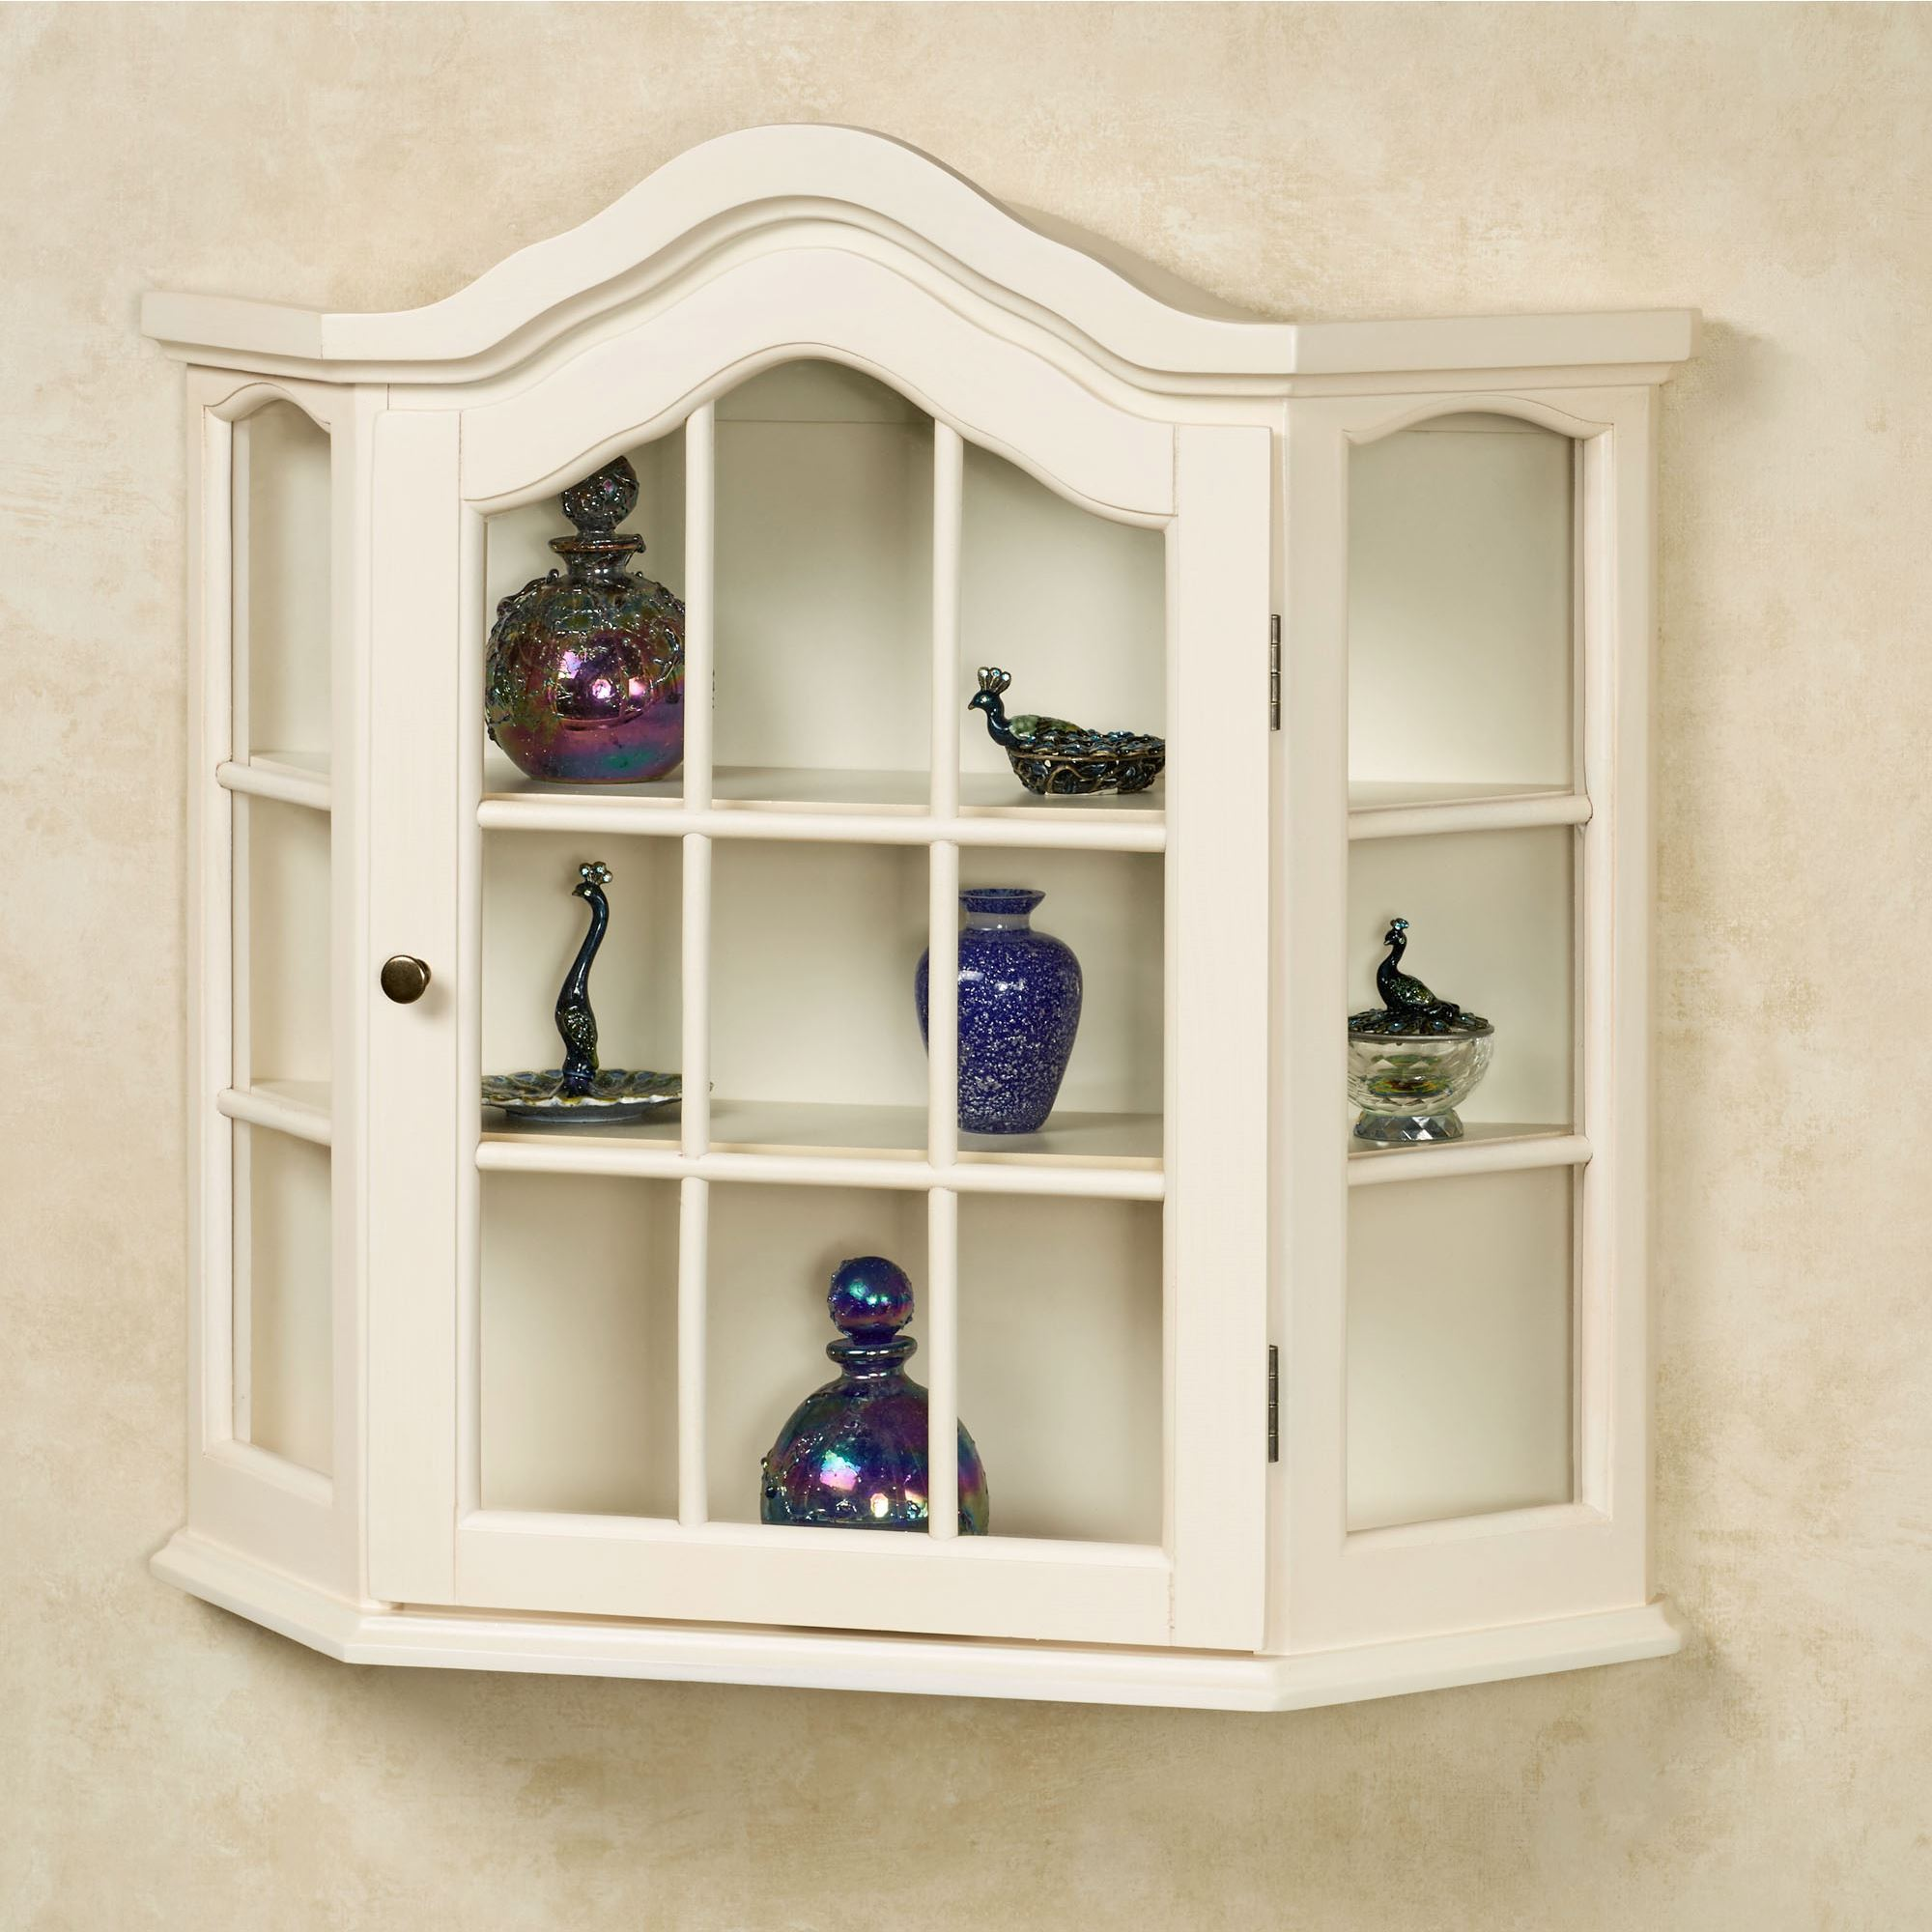 Amelia Wooden Wall Curio Cabinet Whitewash. Touch To Zoom